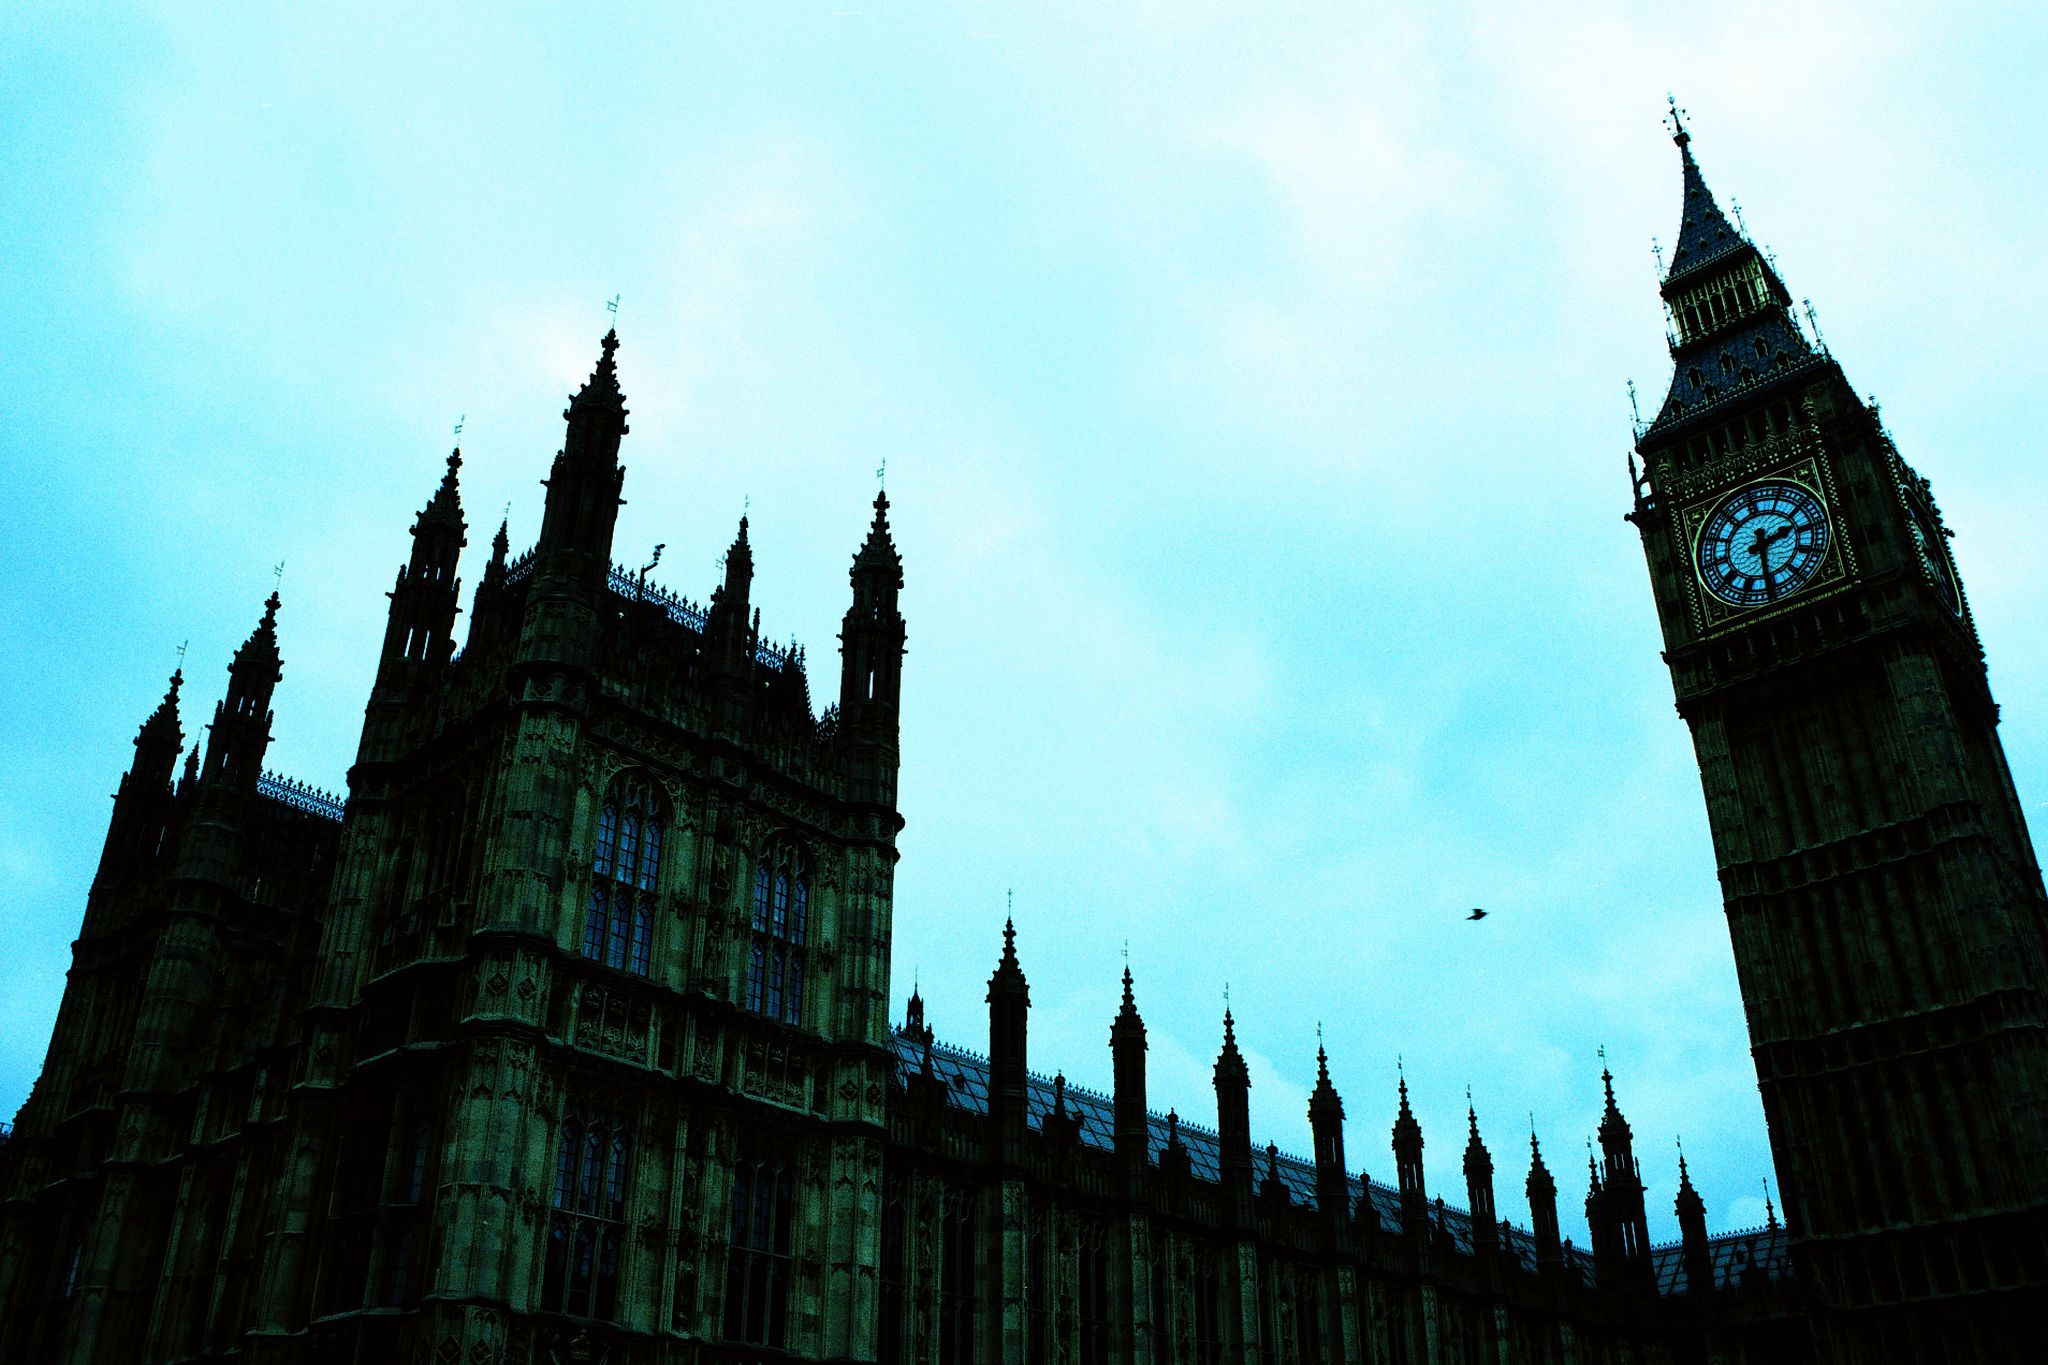 Houses of Parliament looming overhead with Big Ben